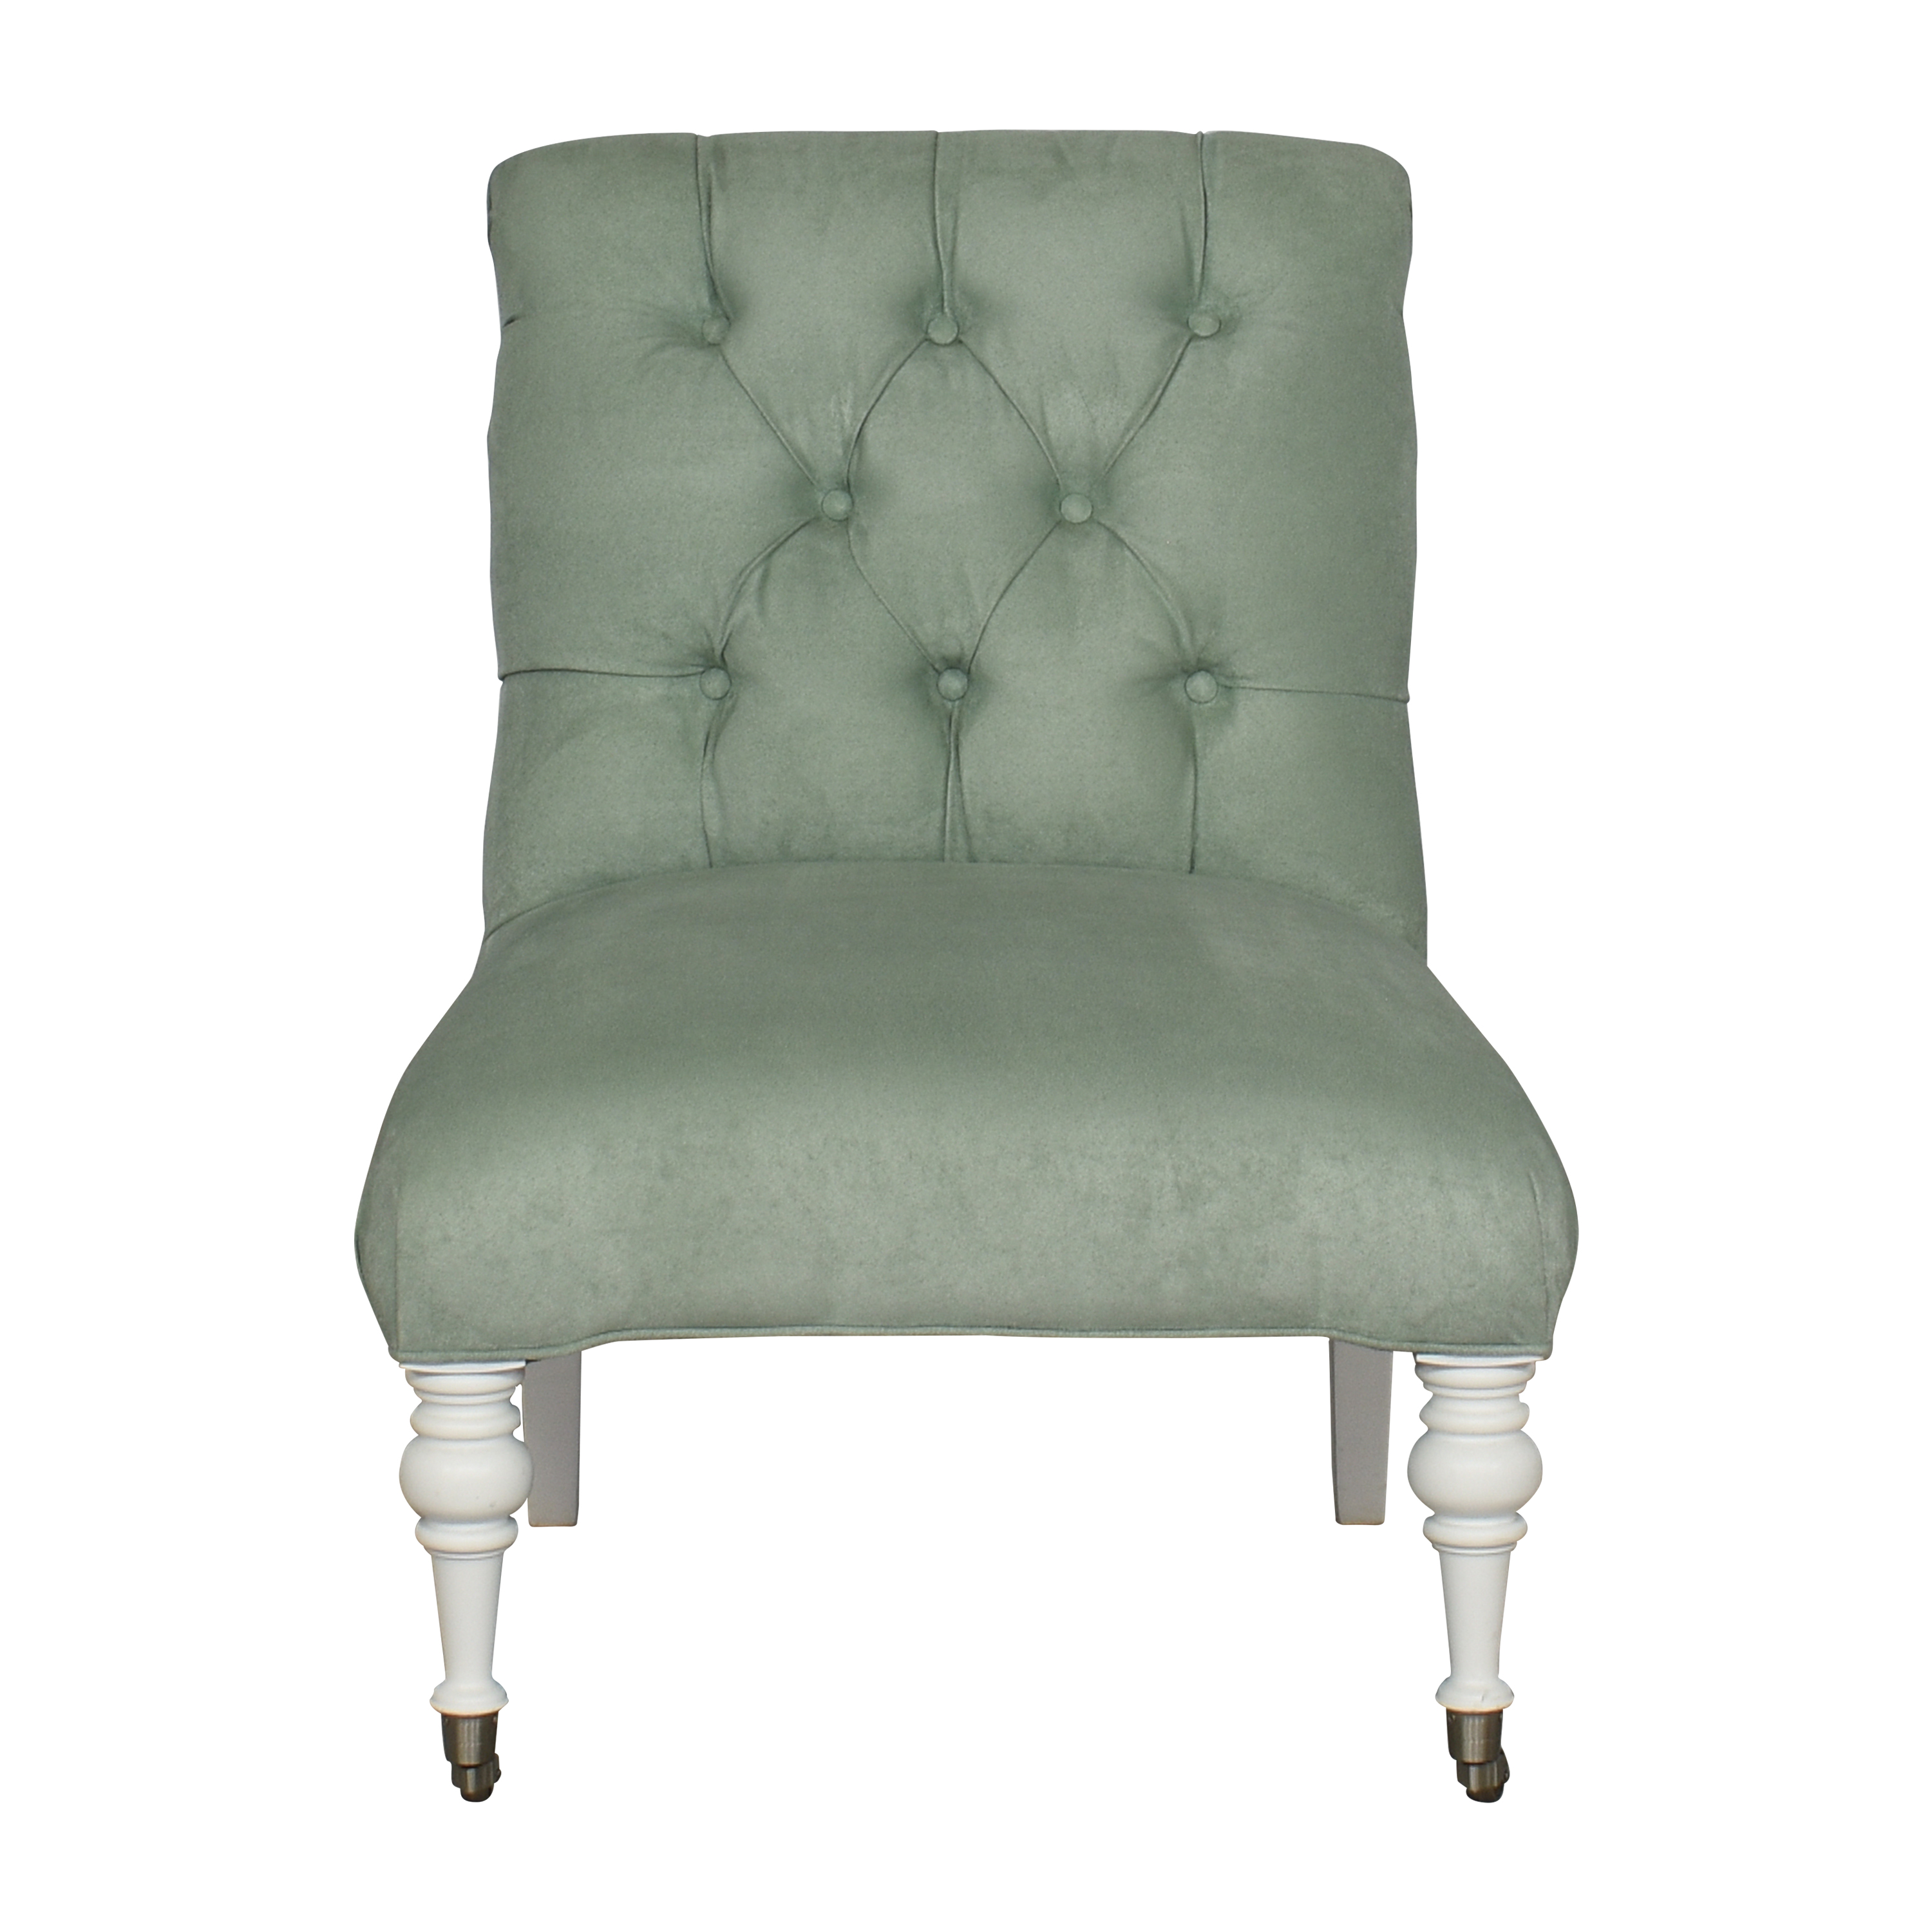 Mitchell Gold + Bob Williams Mitchell Gold + Bob Williams Isabelle Tufted Accent Chair for sale